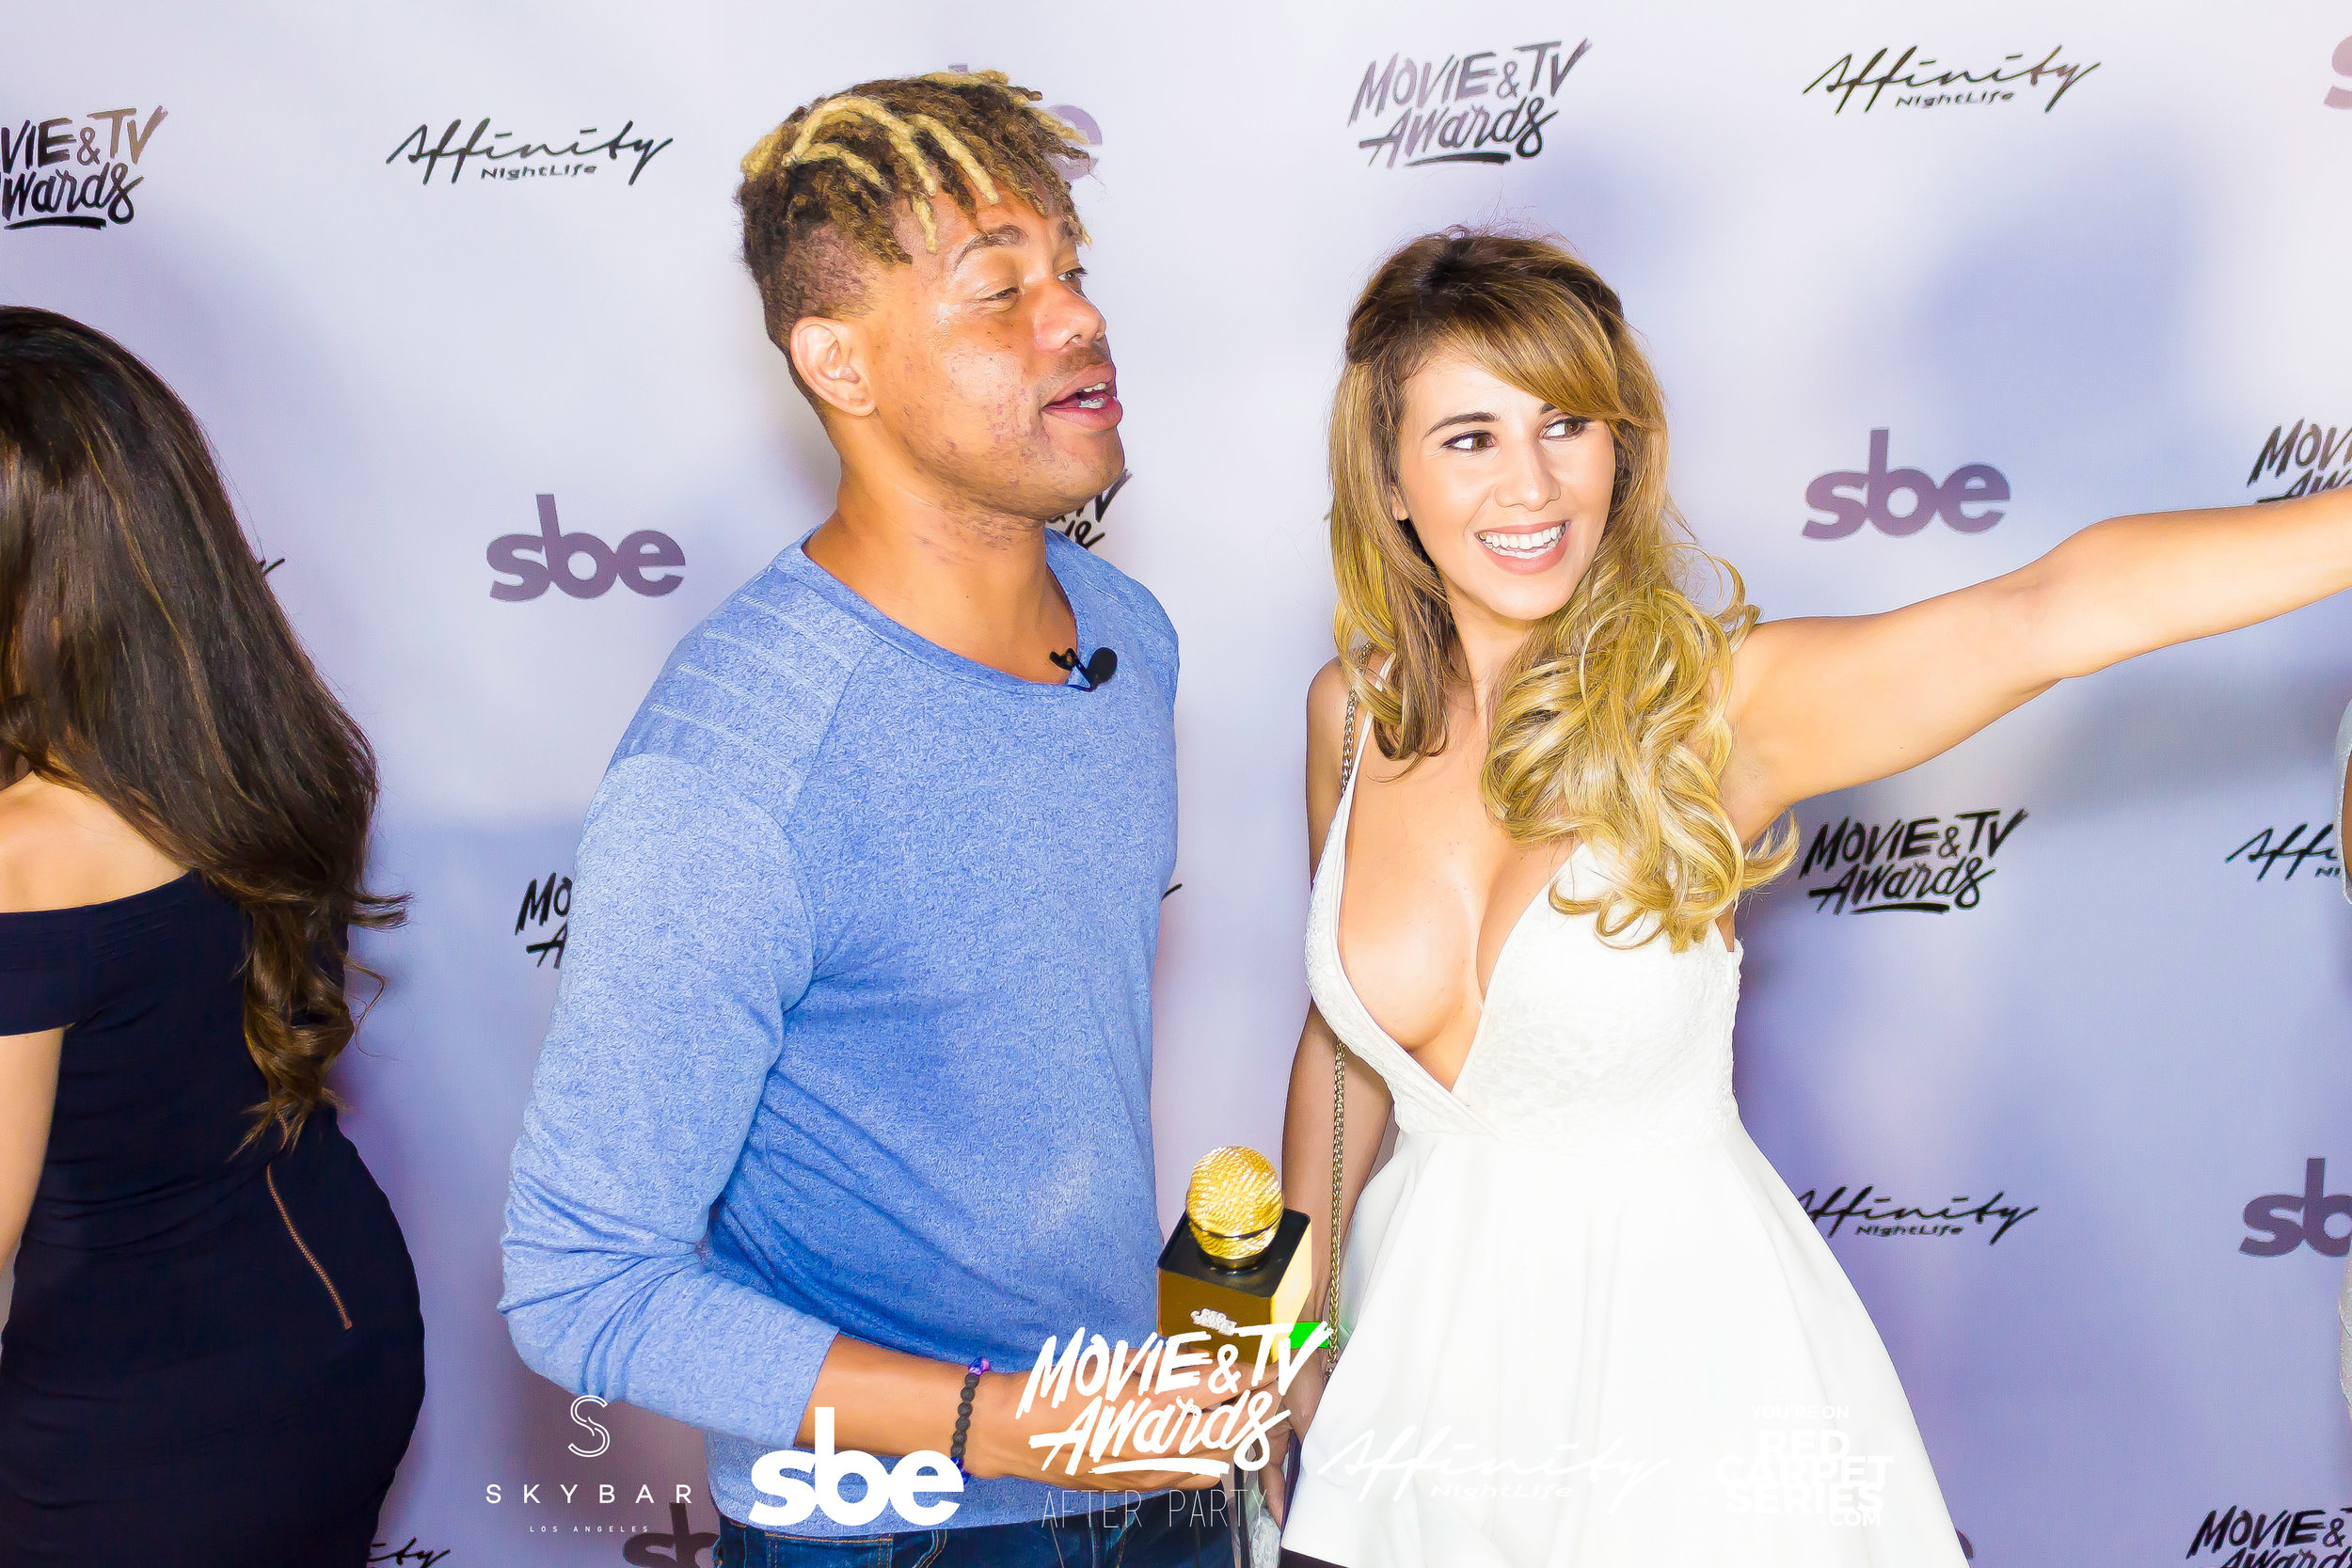 Affinity Nightlife MTV Movie & TV Awards After Party - Skybar at Mondrian - 06-15-19 - Vol. 1_92.jpg